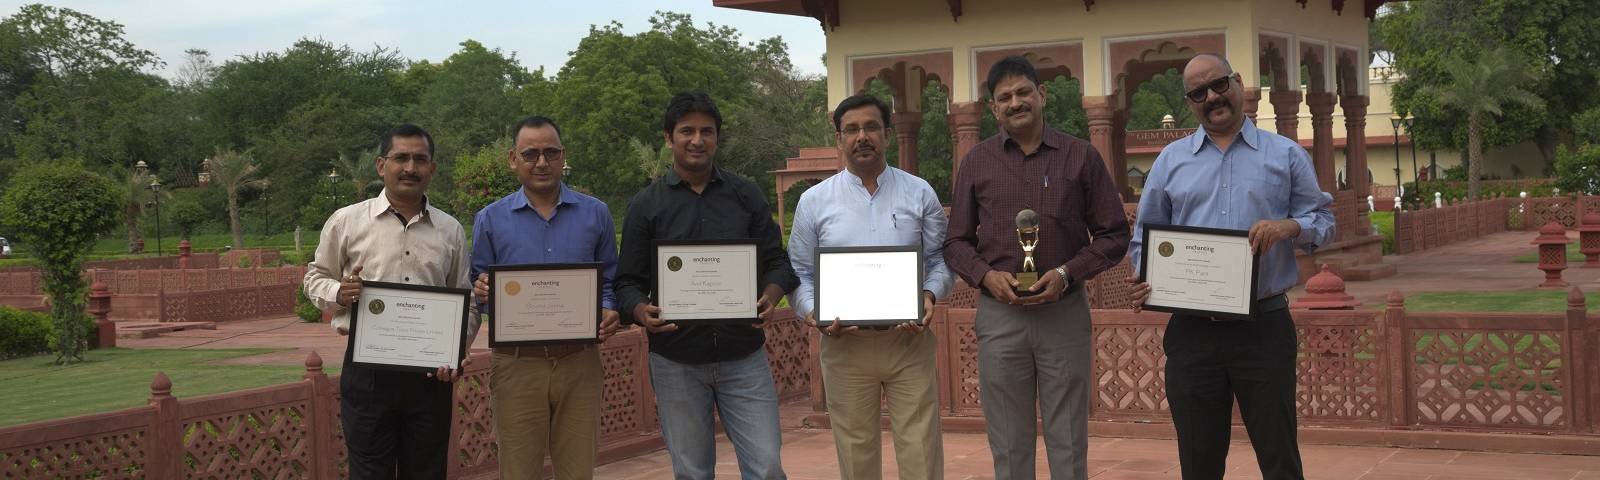 Enchanting Travels India Local Guide _ Chauffeur Awards Community Engagement 2017(1)